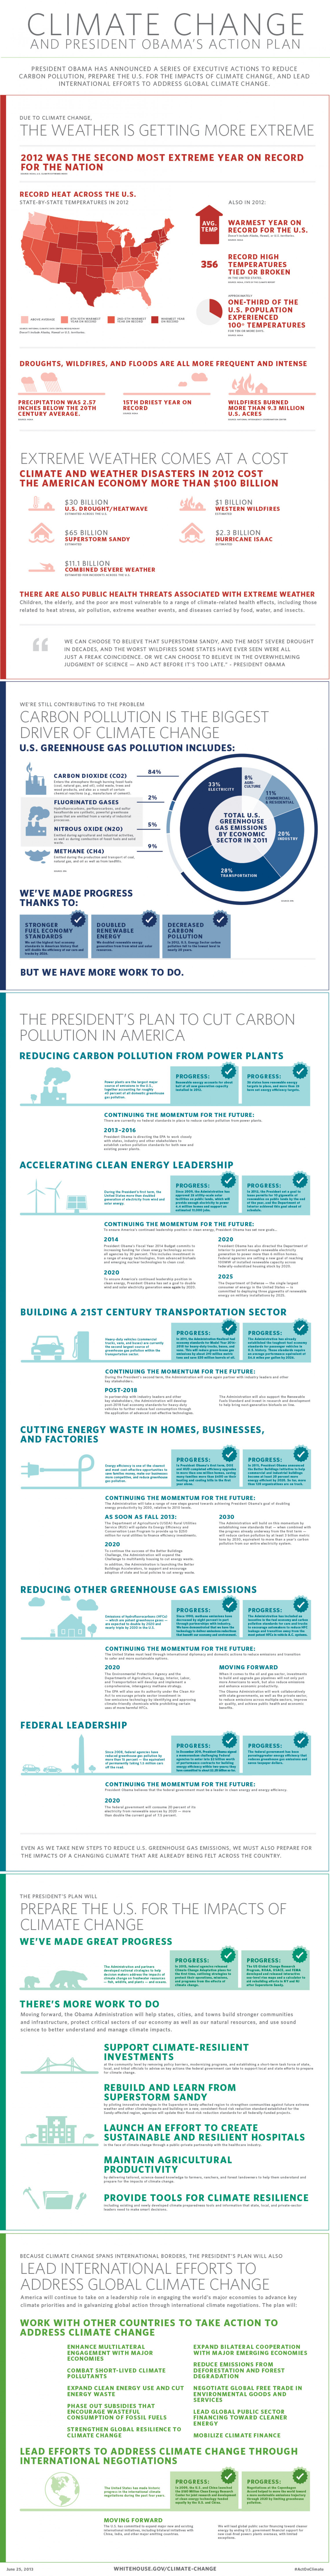 President Obama's Plan to Fight Climate Change Infographic